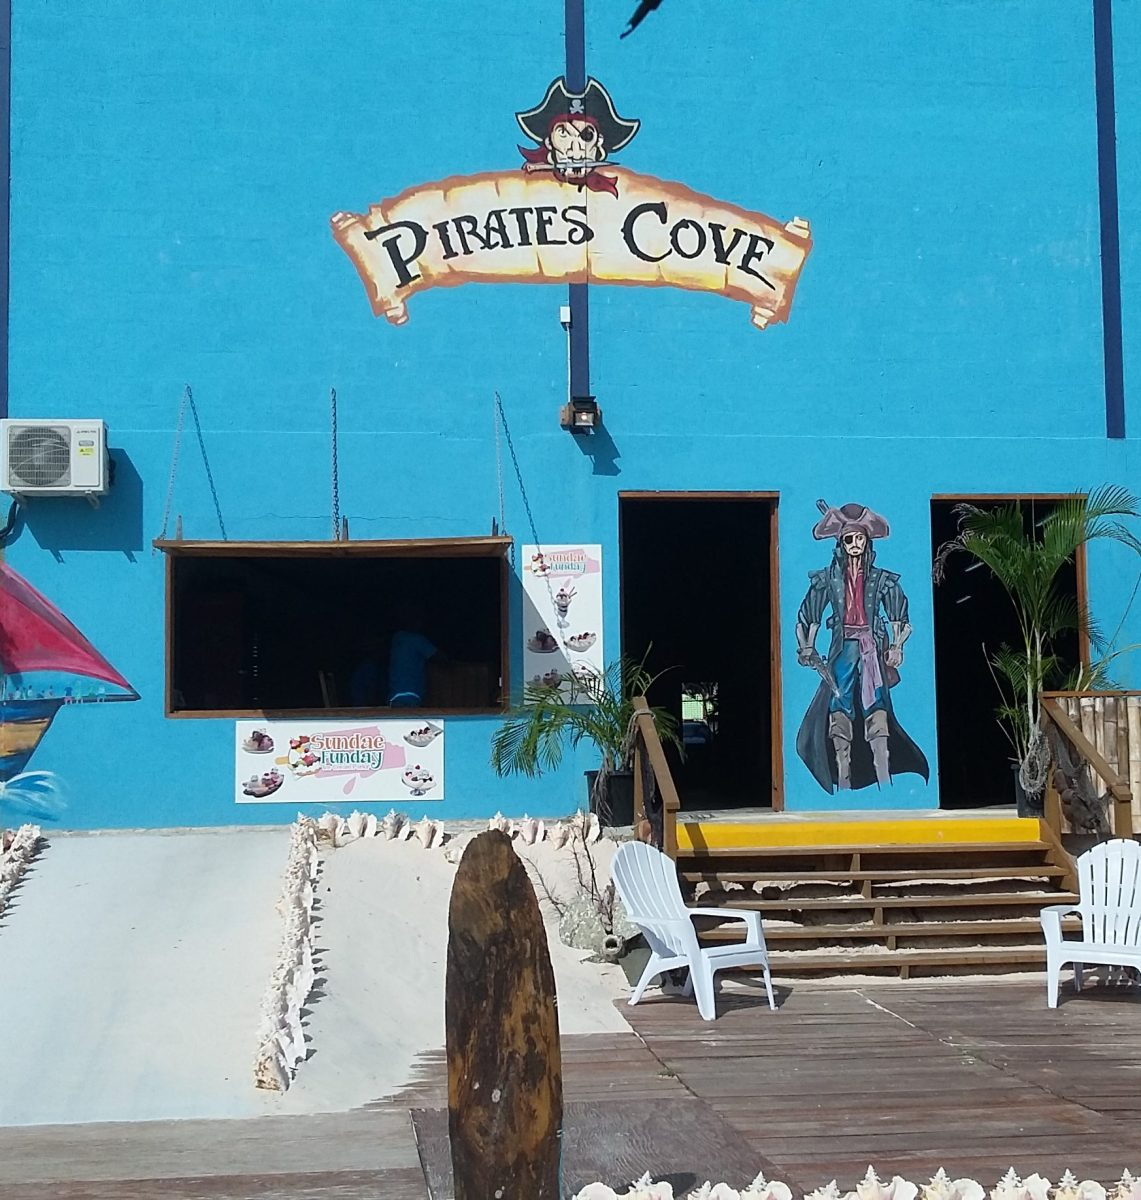 Good Afternoon from Pirate's Cove, Barbados